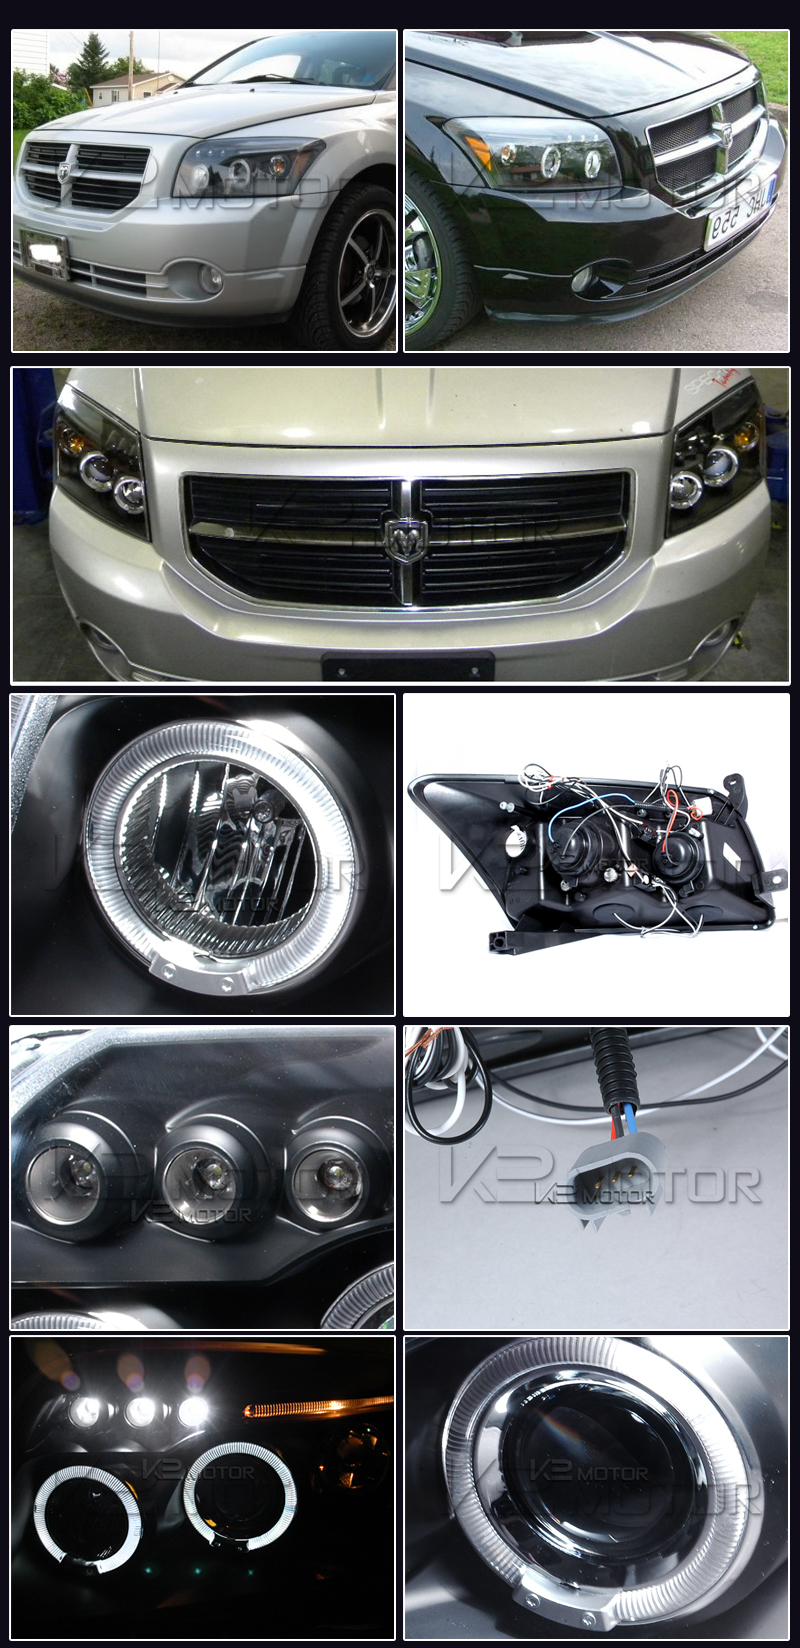 07 12 Dodge Caliber Dual Halo Led Projector Headlights Black Headlight Wiring Inset 1